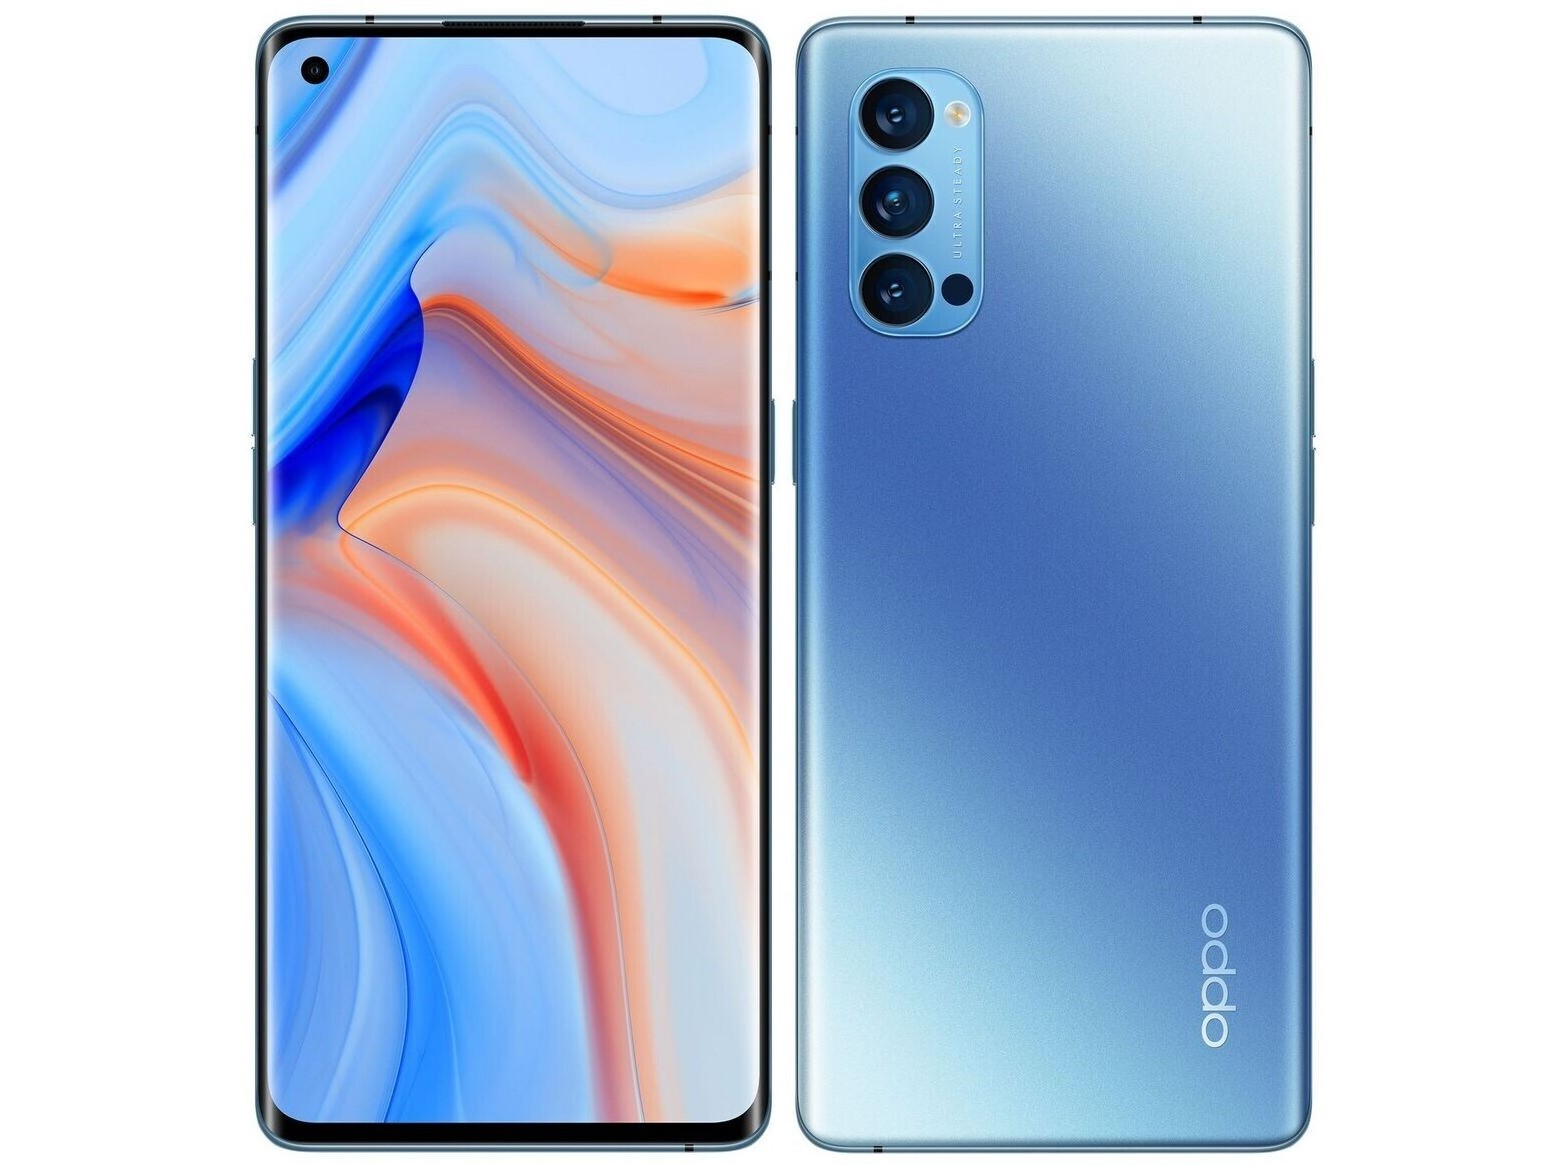 Oppo Reno4 Pro 5G Selfie review: Excellent exposure on faces